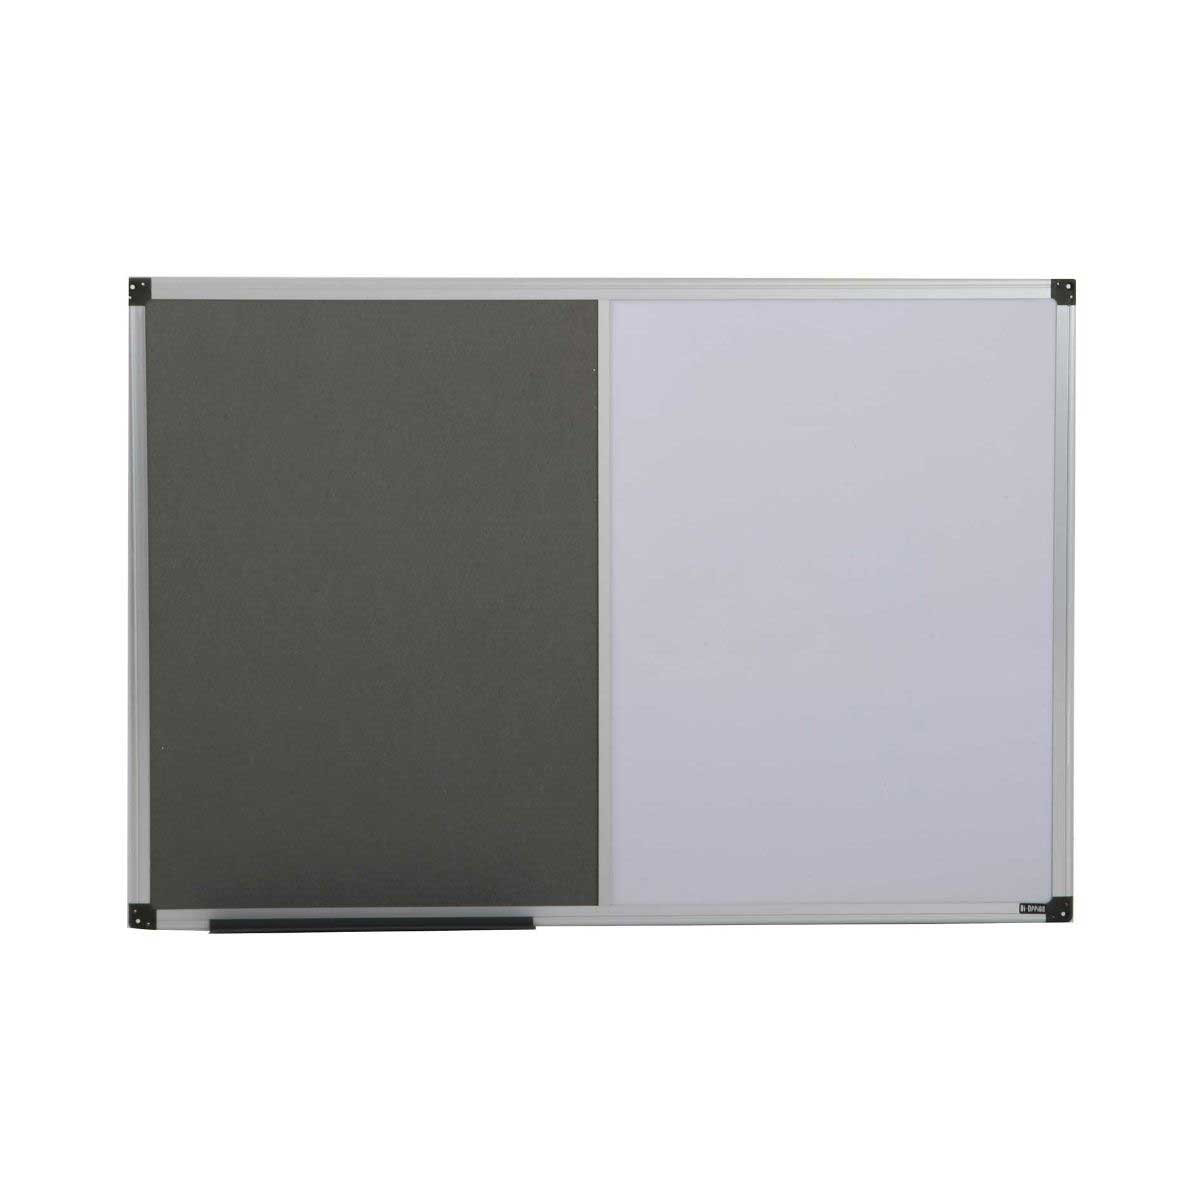 bi-office grey felt and magnetic dry wipe combination notice board 900x600mm aluminium, grey